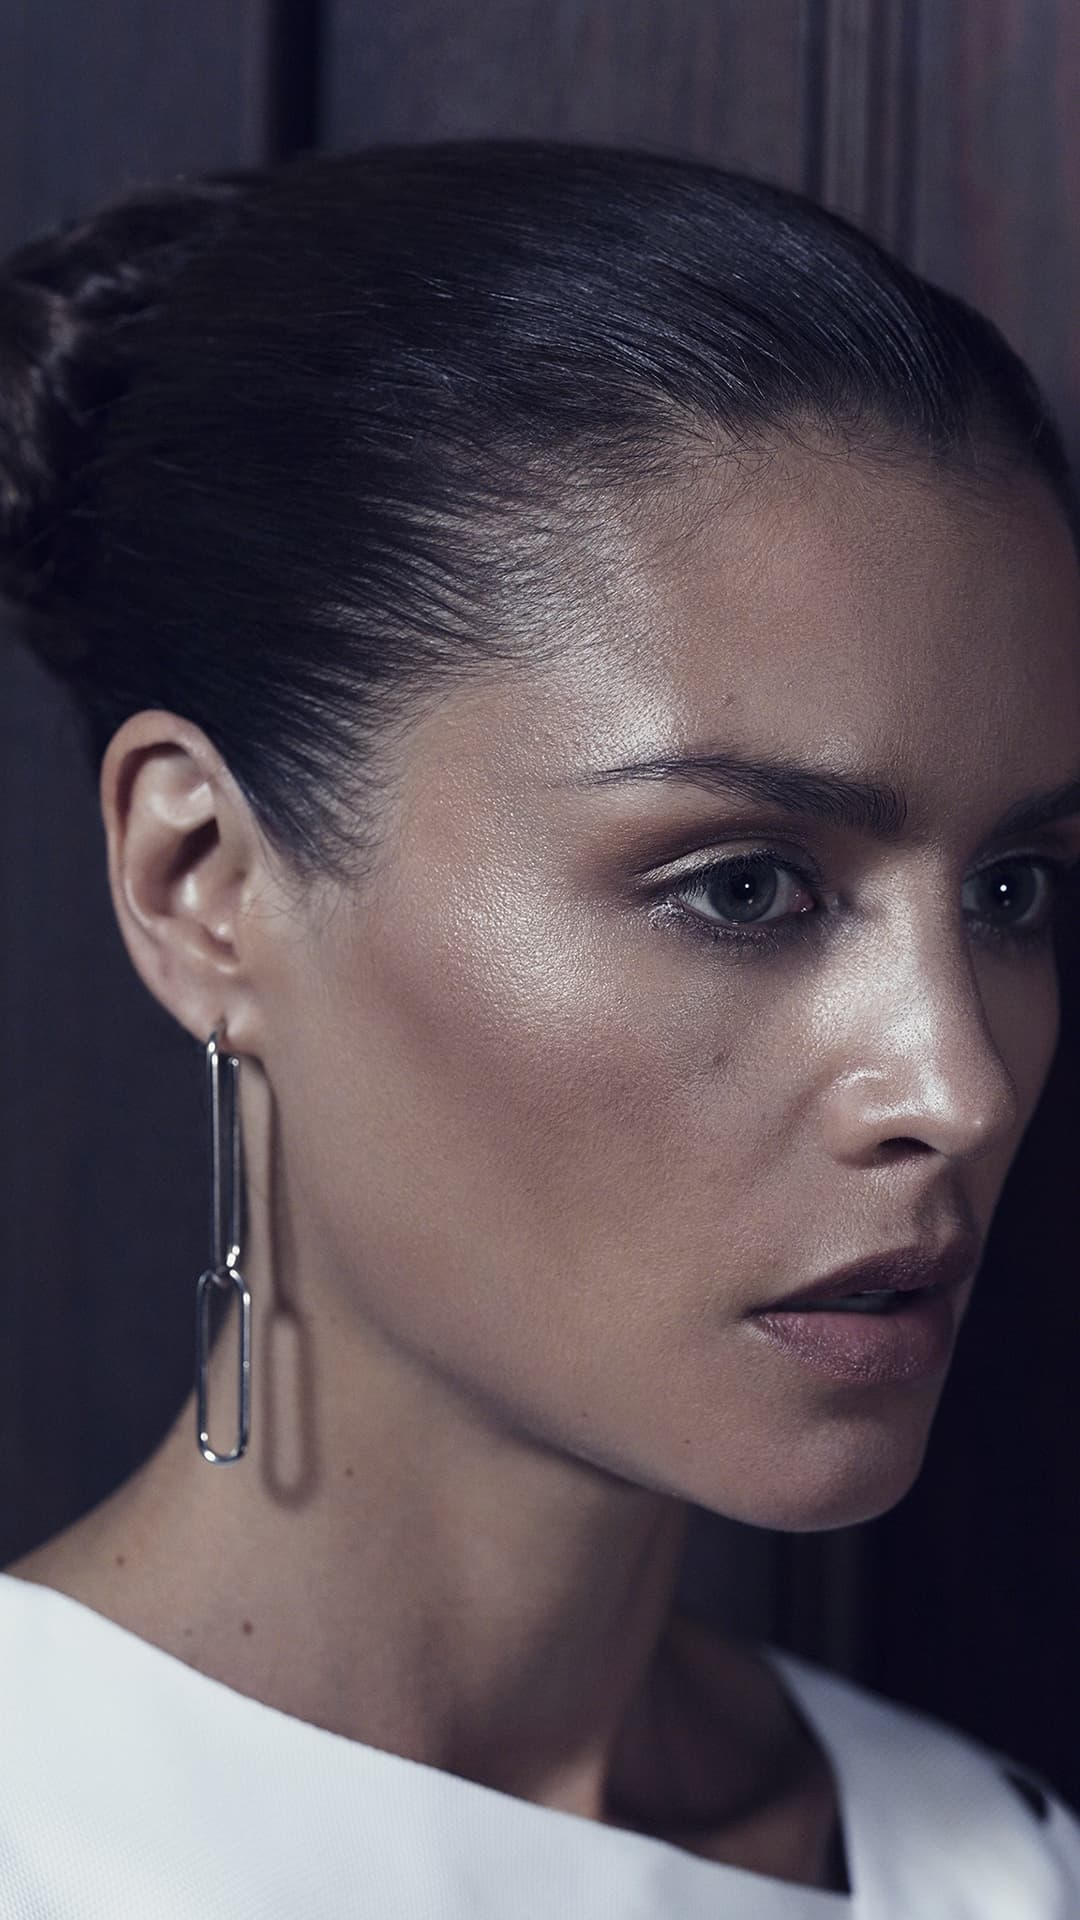 Download The Car Wallpaper Hannah Ware Wallpapers Hd High Quality Resolution Download